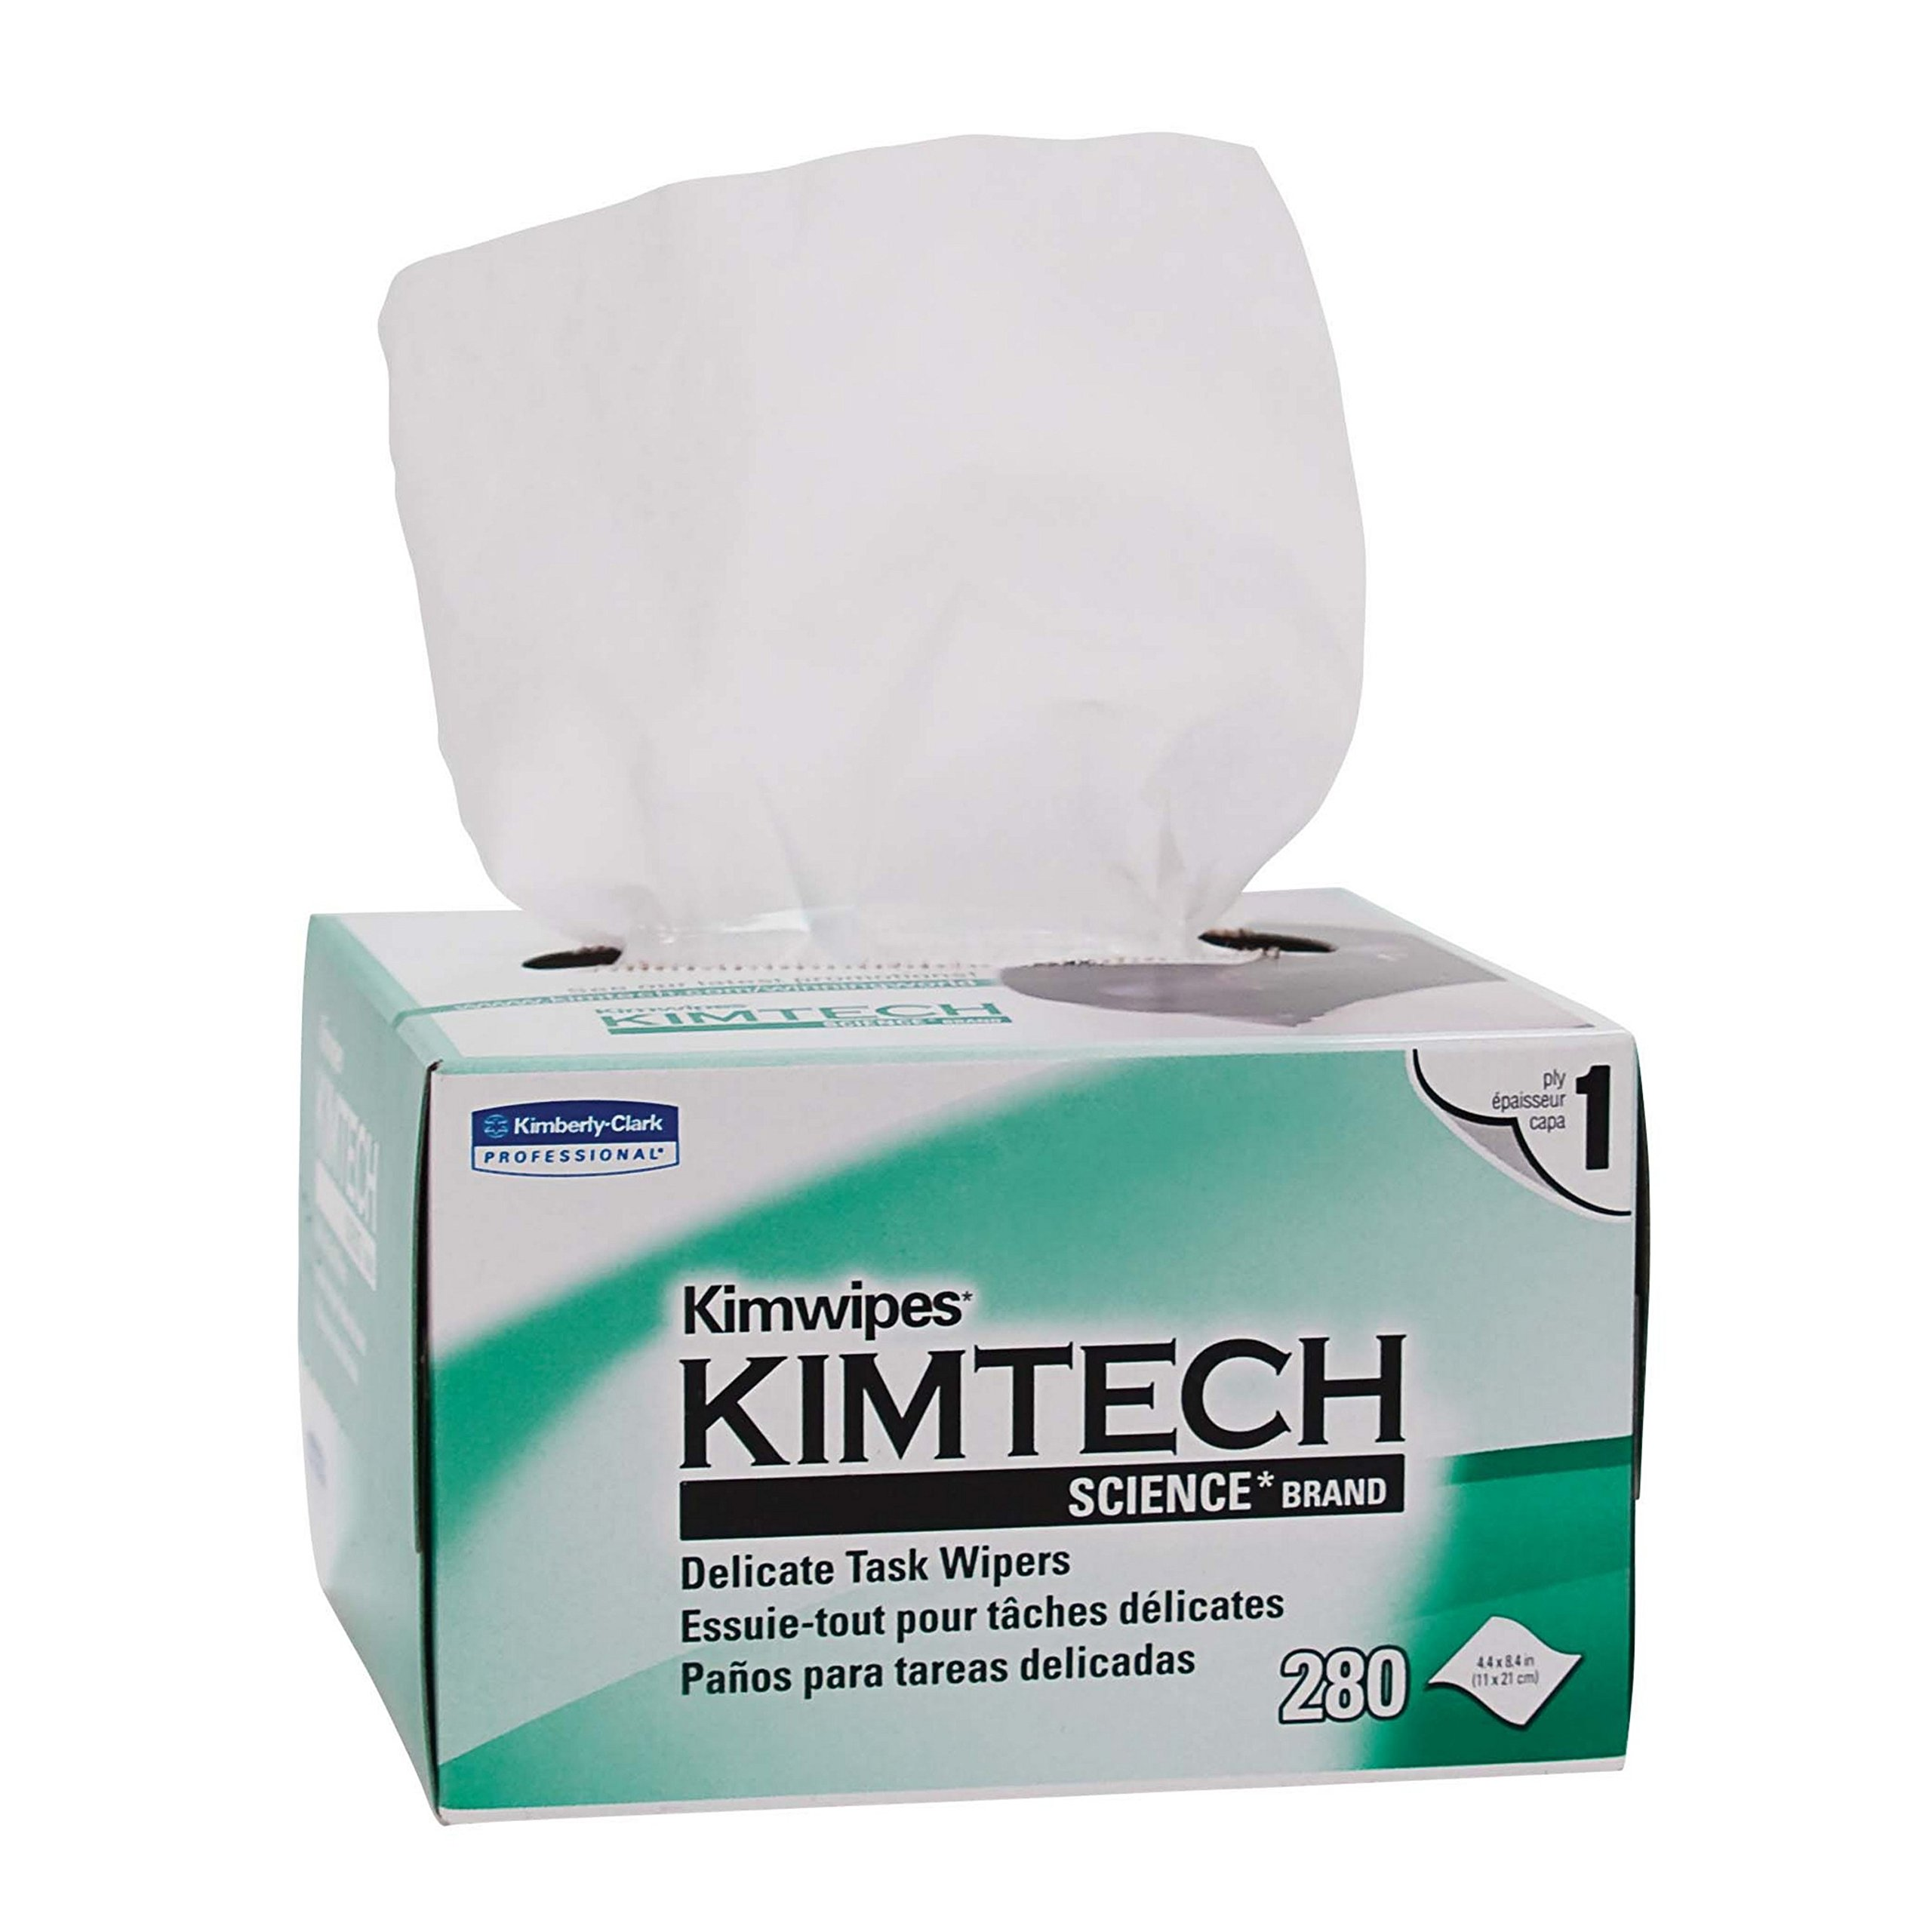 Kimberly-Clark Kimtech Science Kimwipes Delicate Task Disposable Wiper, 8-25/64'' Length x 4-25/64'' Width, White (Pack of 3)